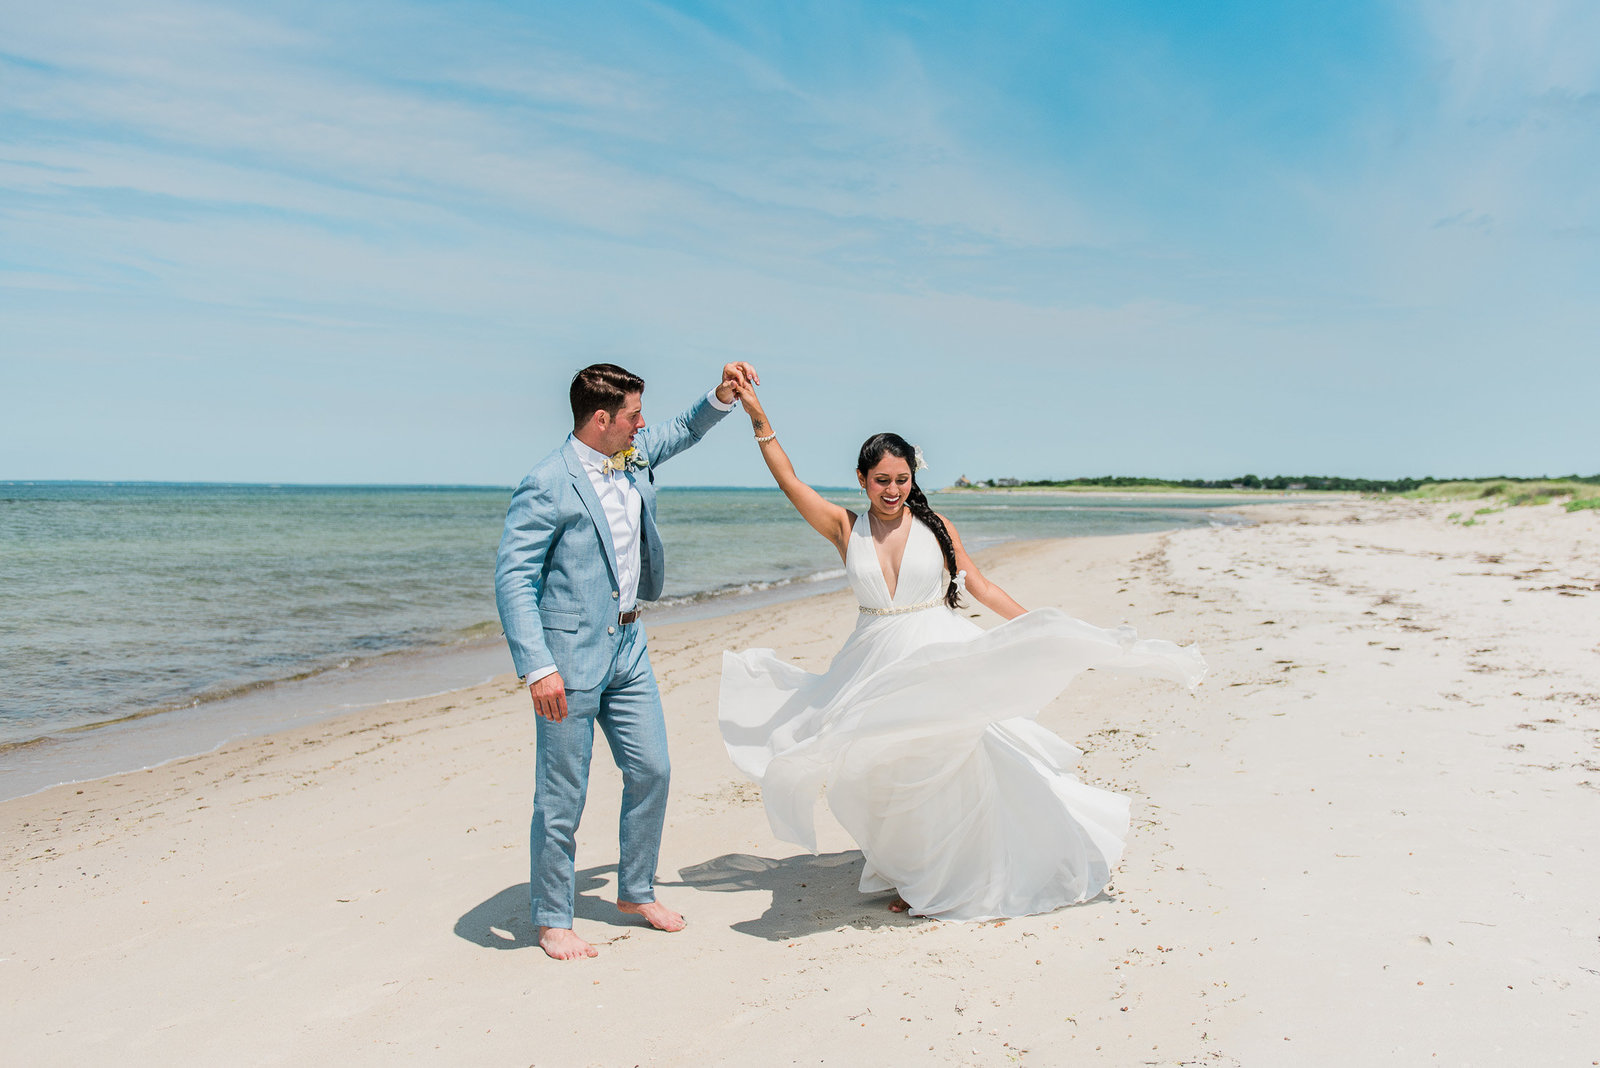 A Falmouth beach wedding and elopement in Cape Cod, MA